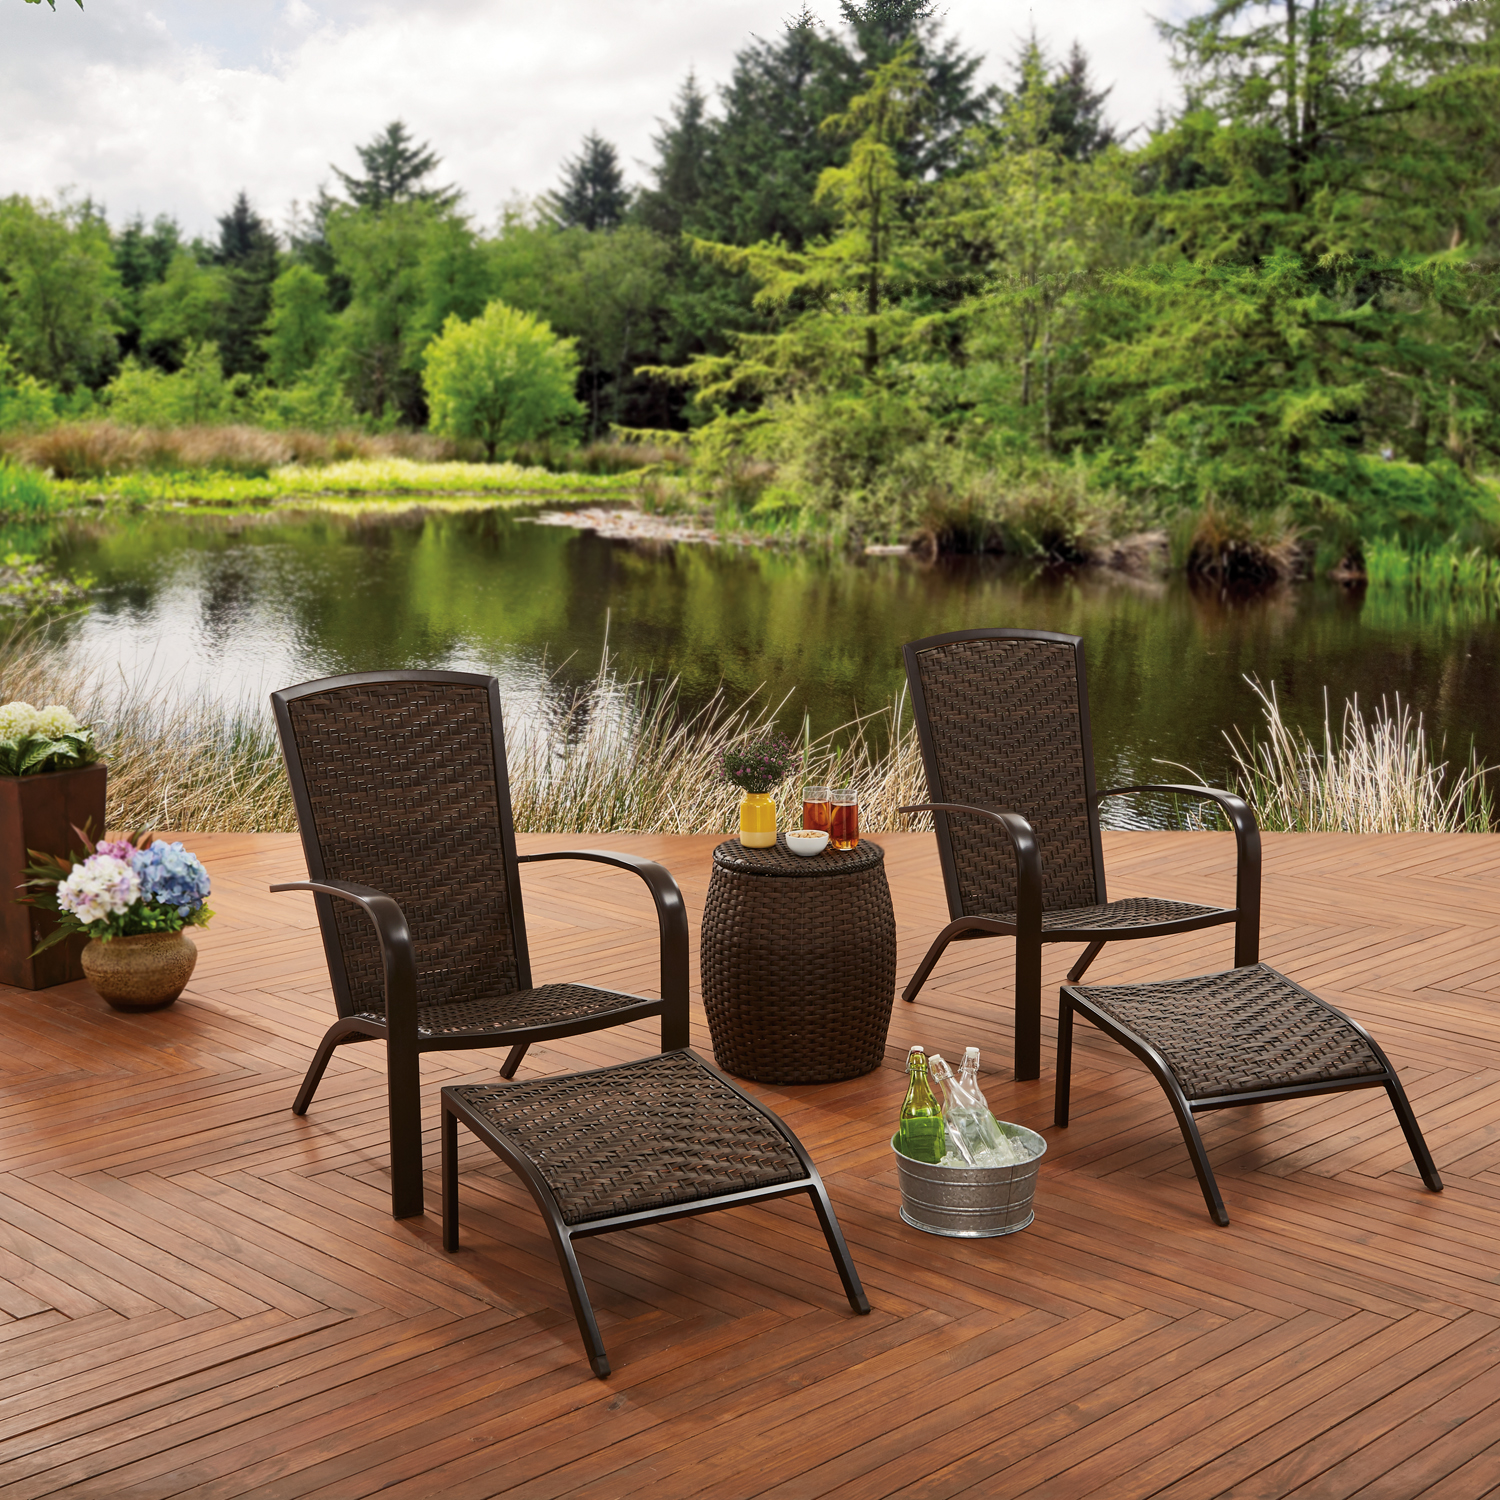 Better Homes & Gardens 5-Piece Wicker Adirondack Chair Chat Set